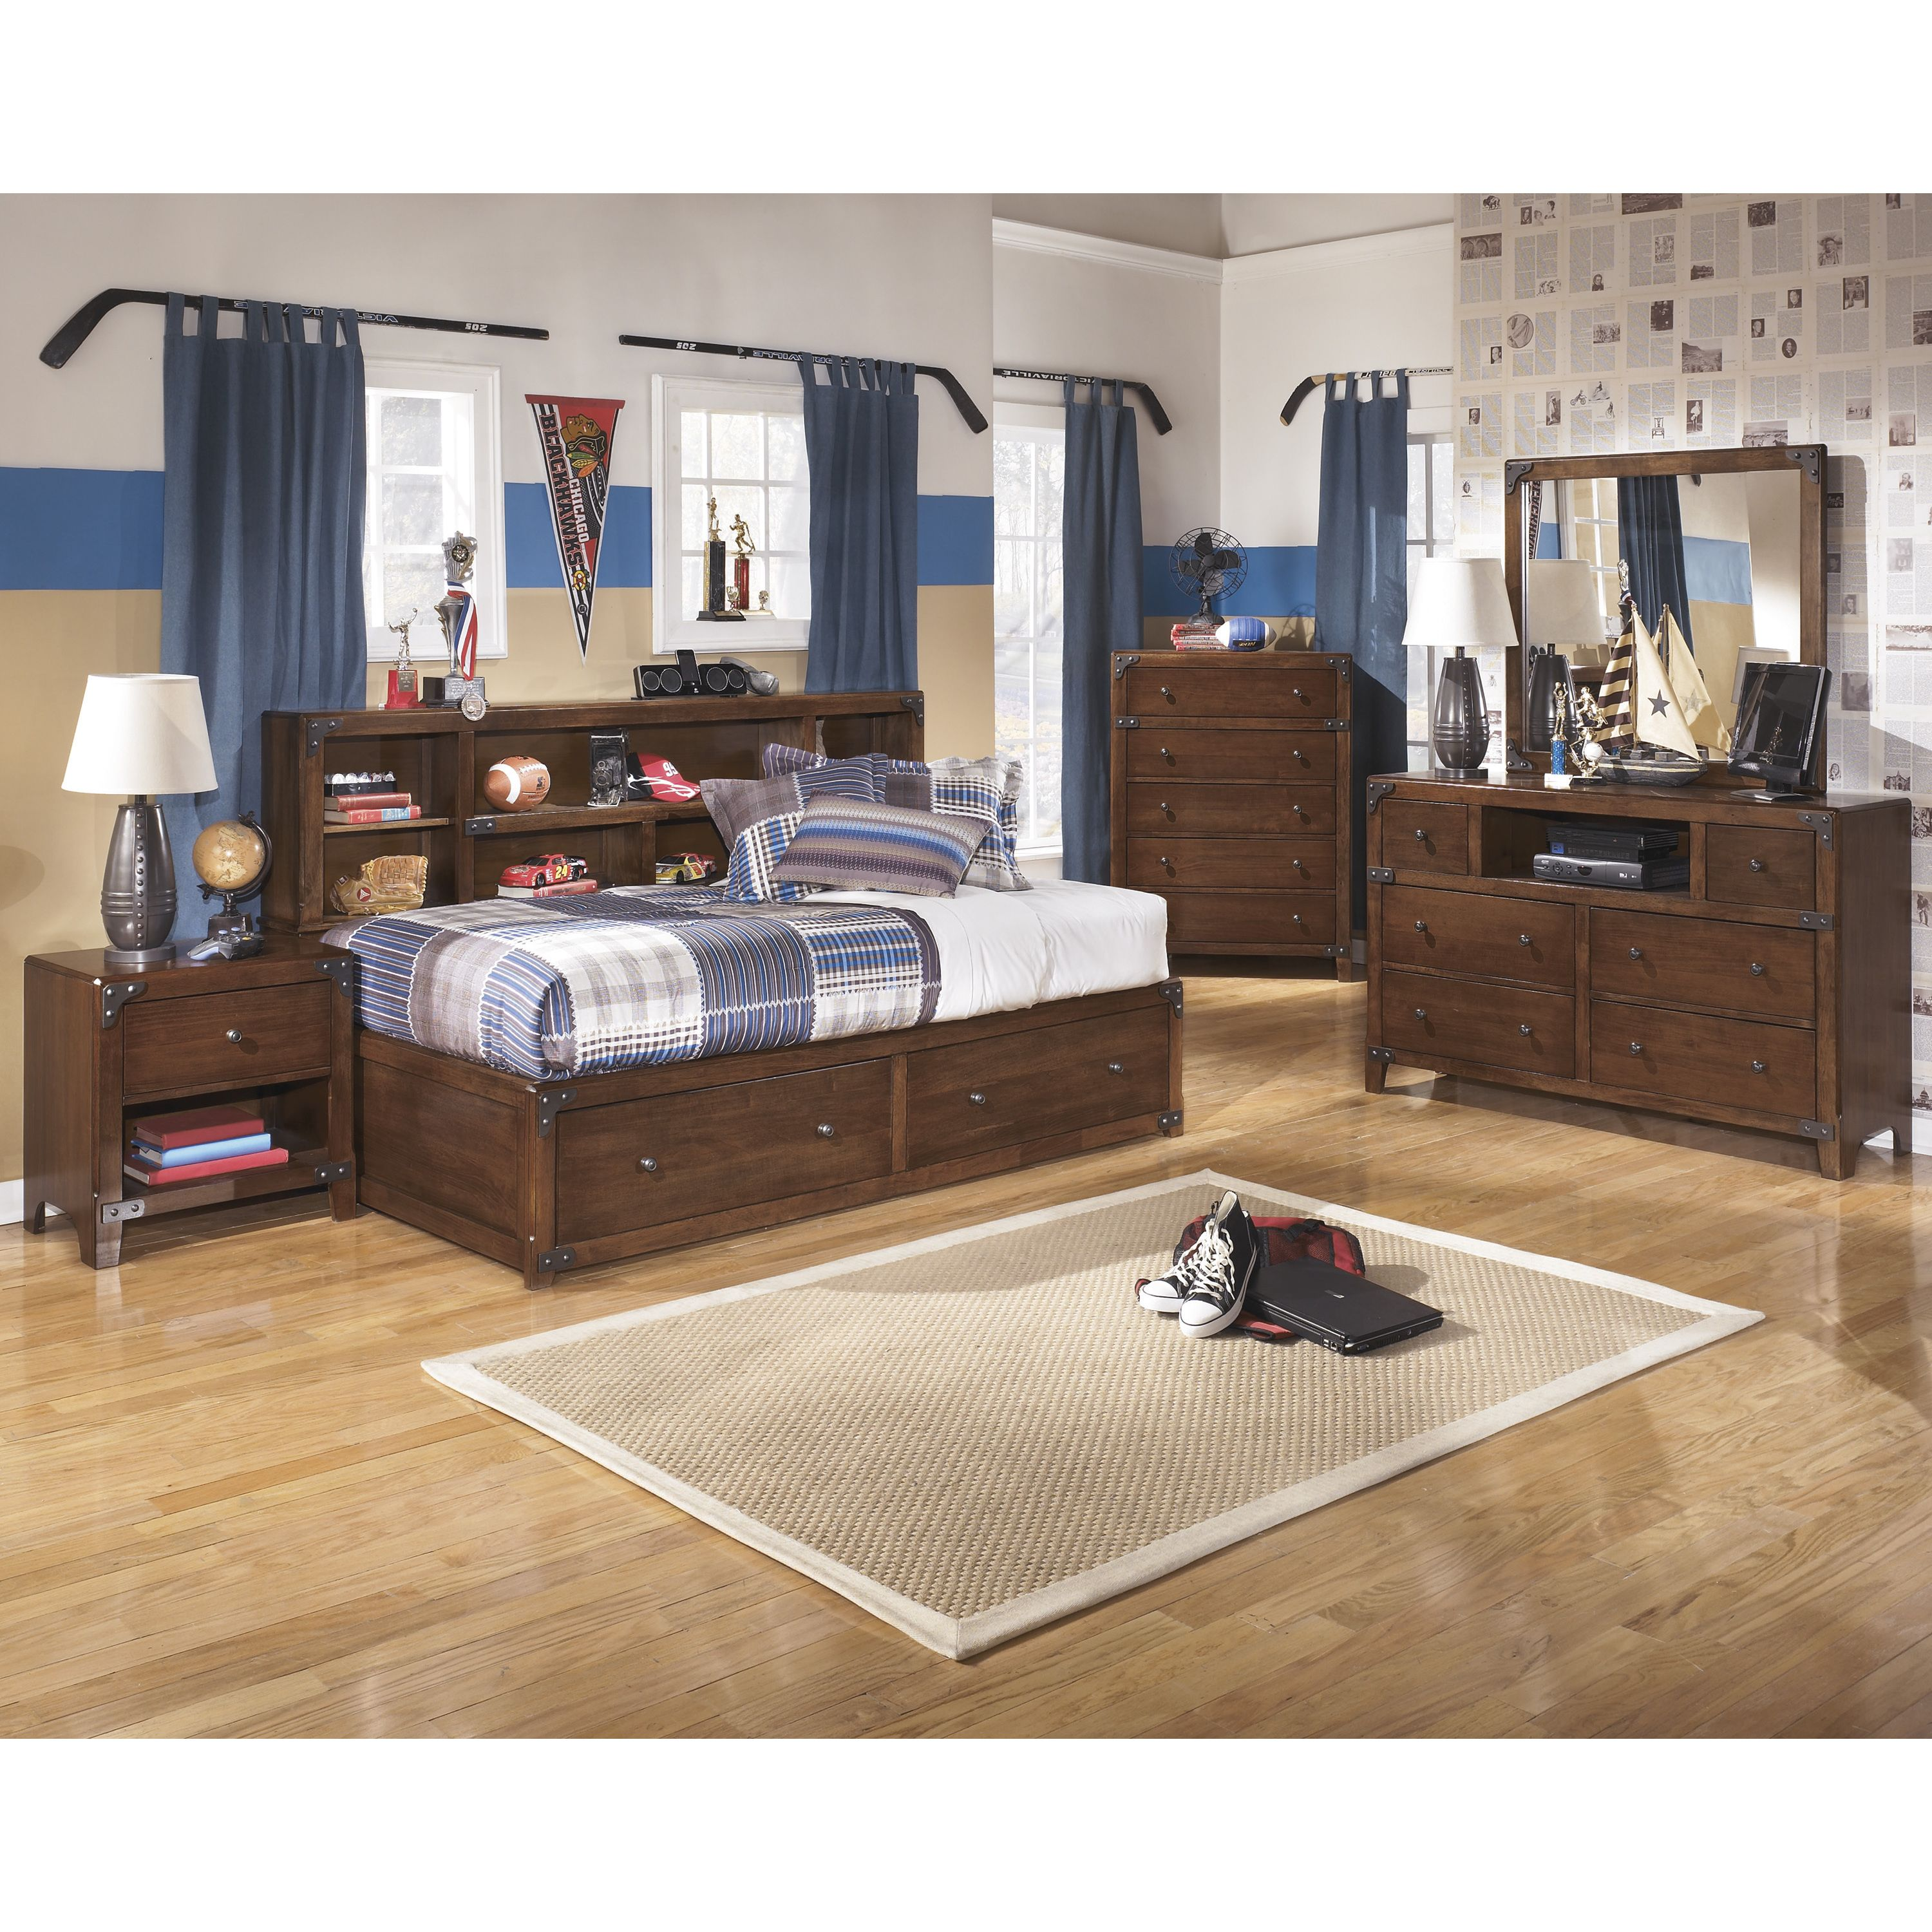 Invite a vintage feel with the delburne panel bed to your room with